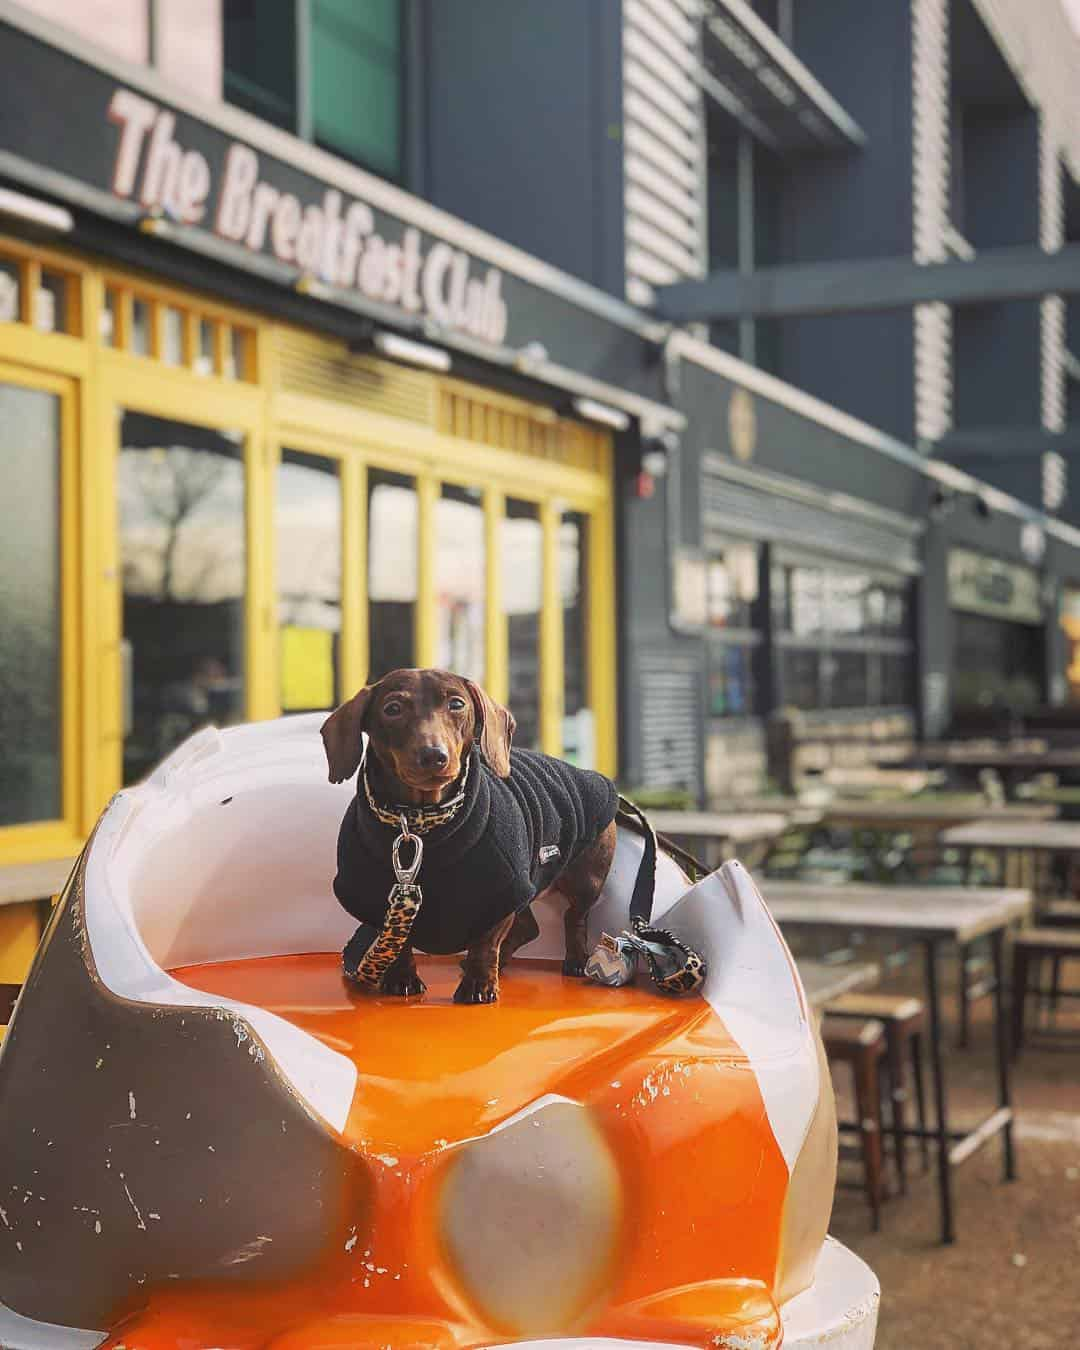 My Dog Friendly London by Pops the Sausage - Breakfast Club Hackney Wick 2